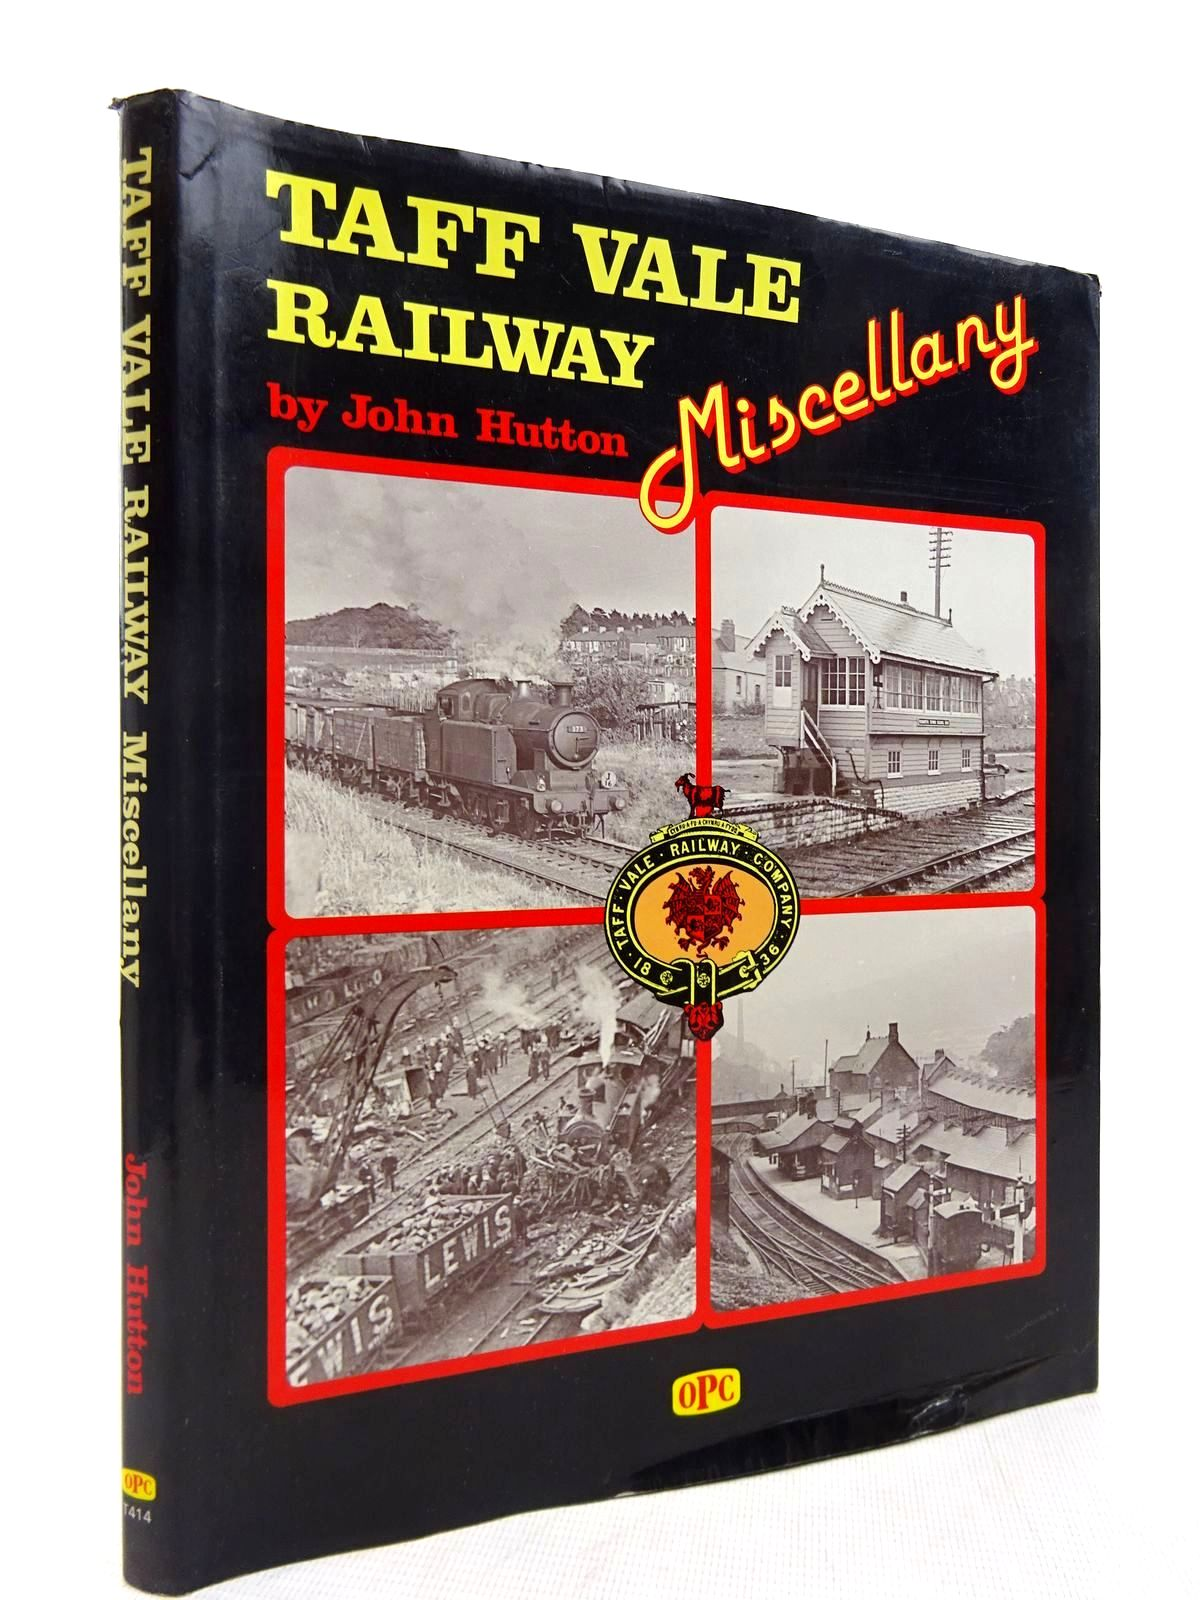 Photo of TAFF VALE RAILWAY MISCELLANY written by Hutton, John published by Haynes, Oxford Publishing Co (STOCK CODE: 2128760)  for sale by Stella & Rose's Books